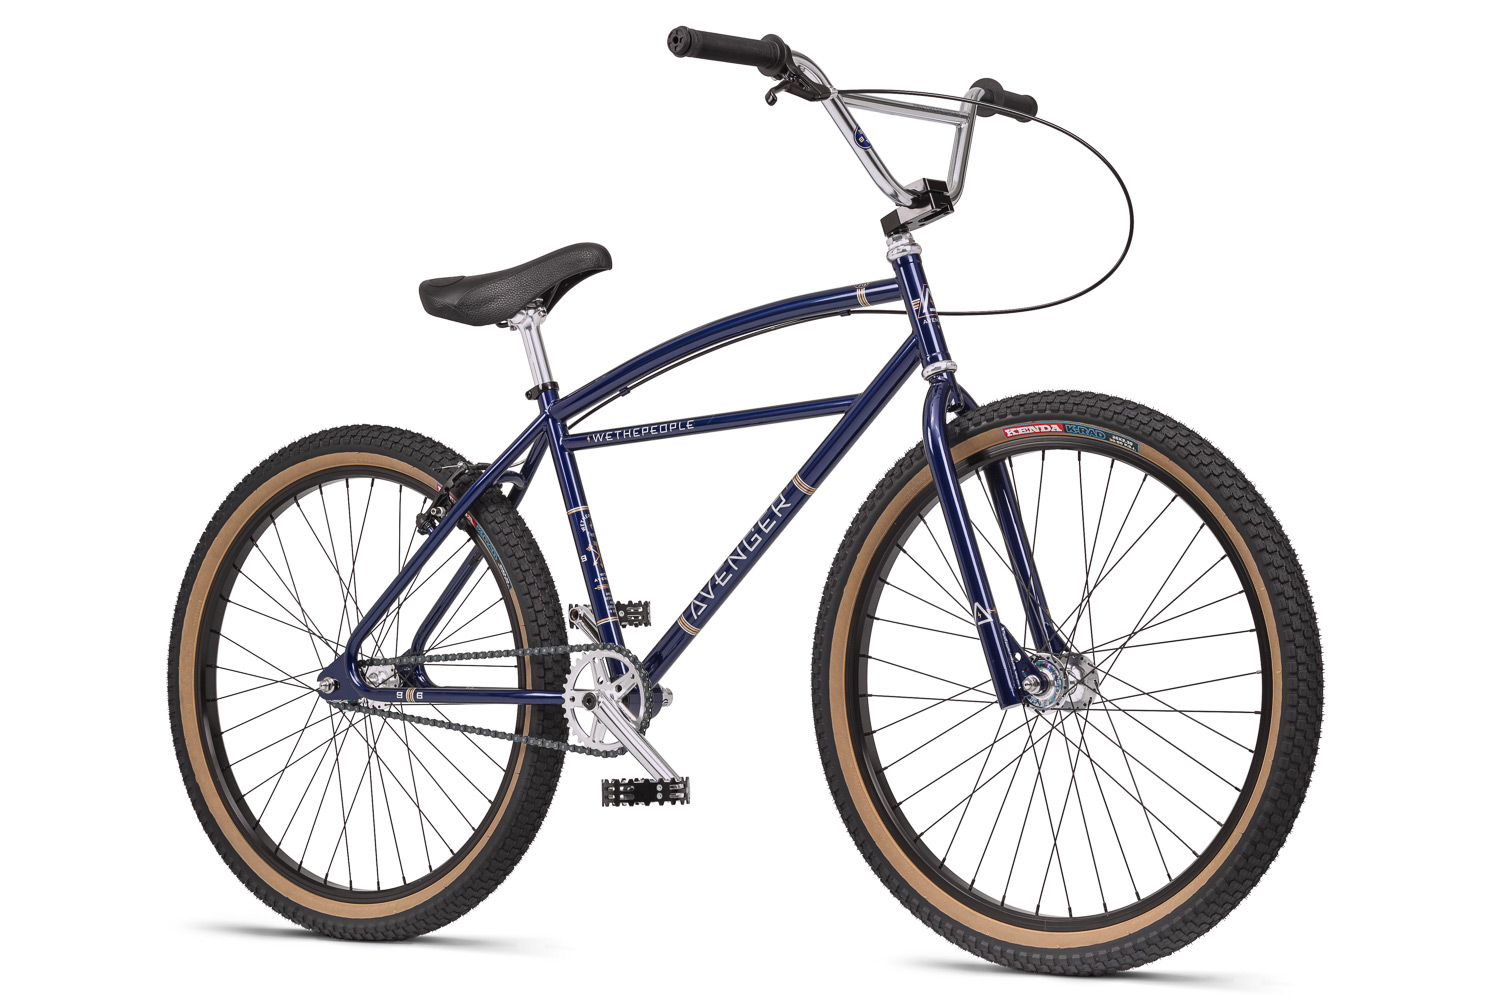 Cruise in classic BMX style on the new WeThePeople 26\